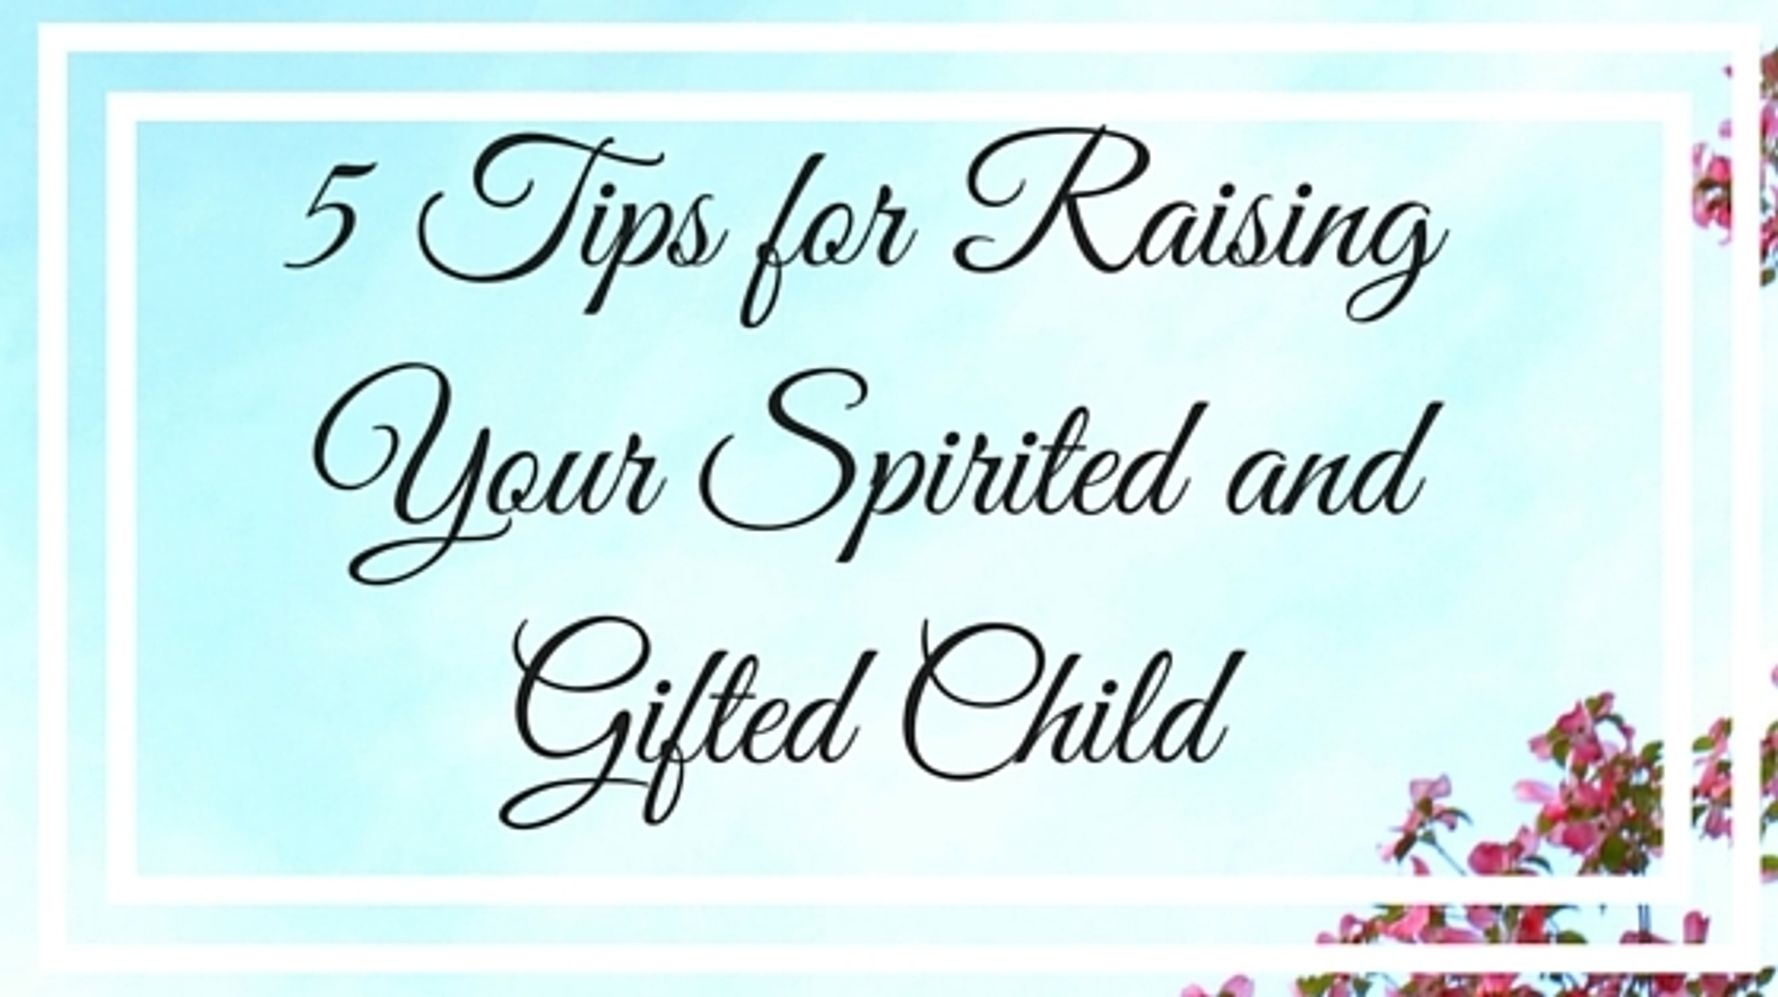 d1db3aba8be04 5 Overlooked Strategies For Raising Your Spirited Child | HuffPost Life